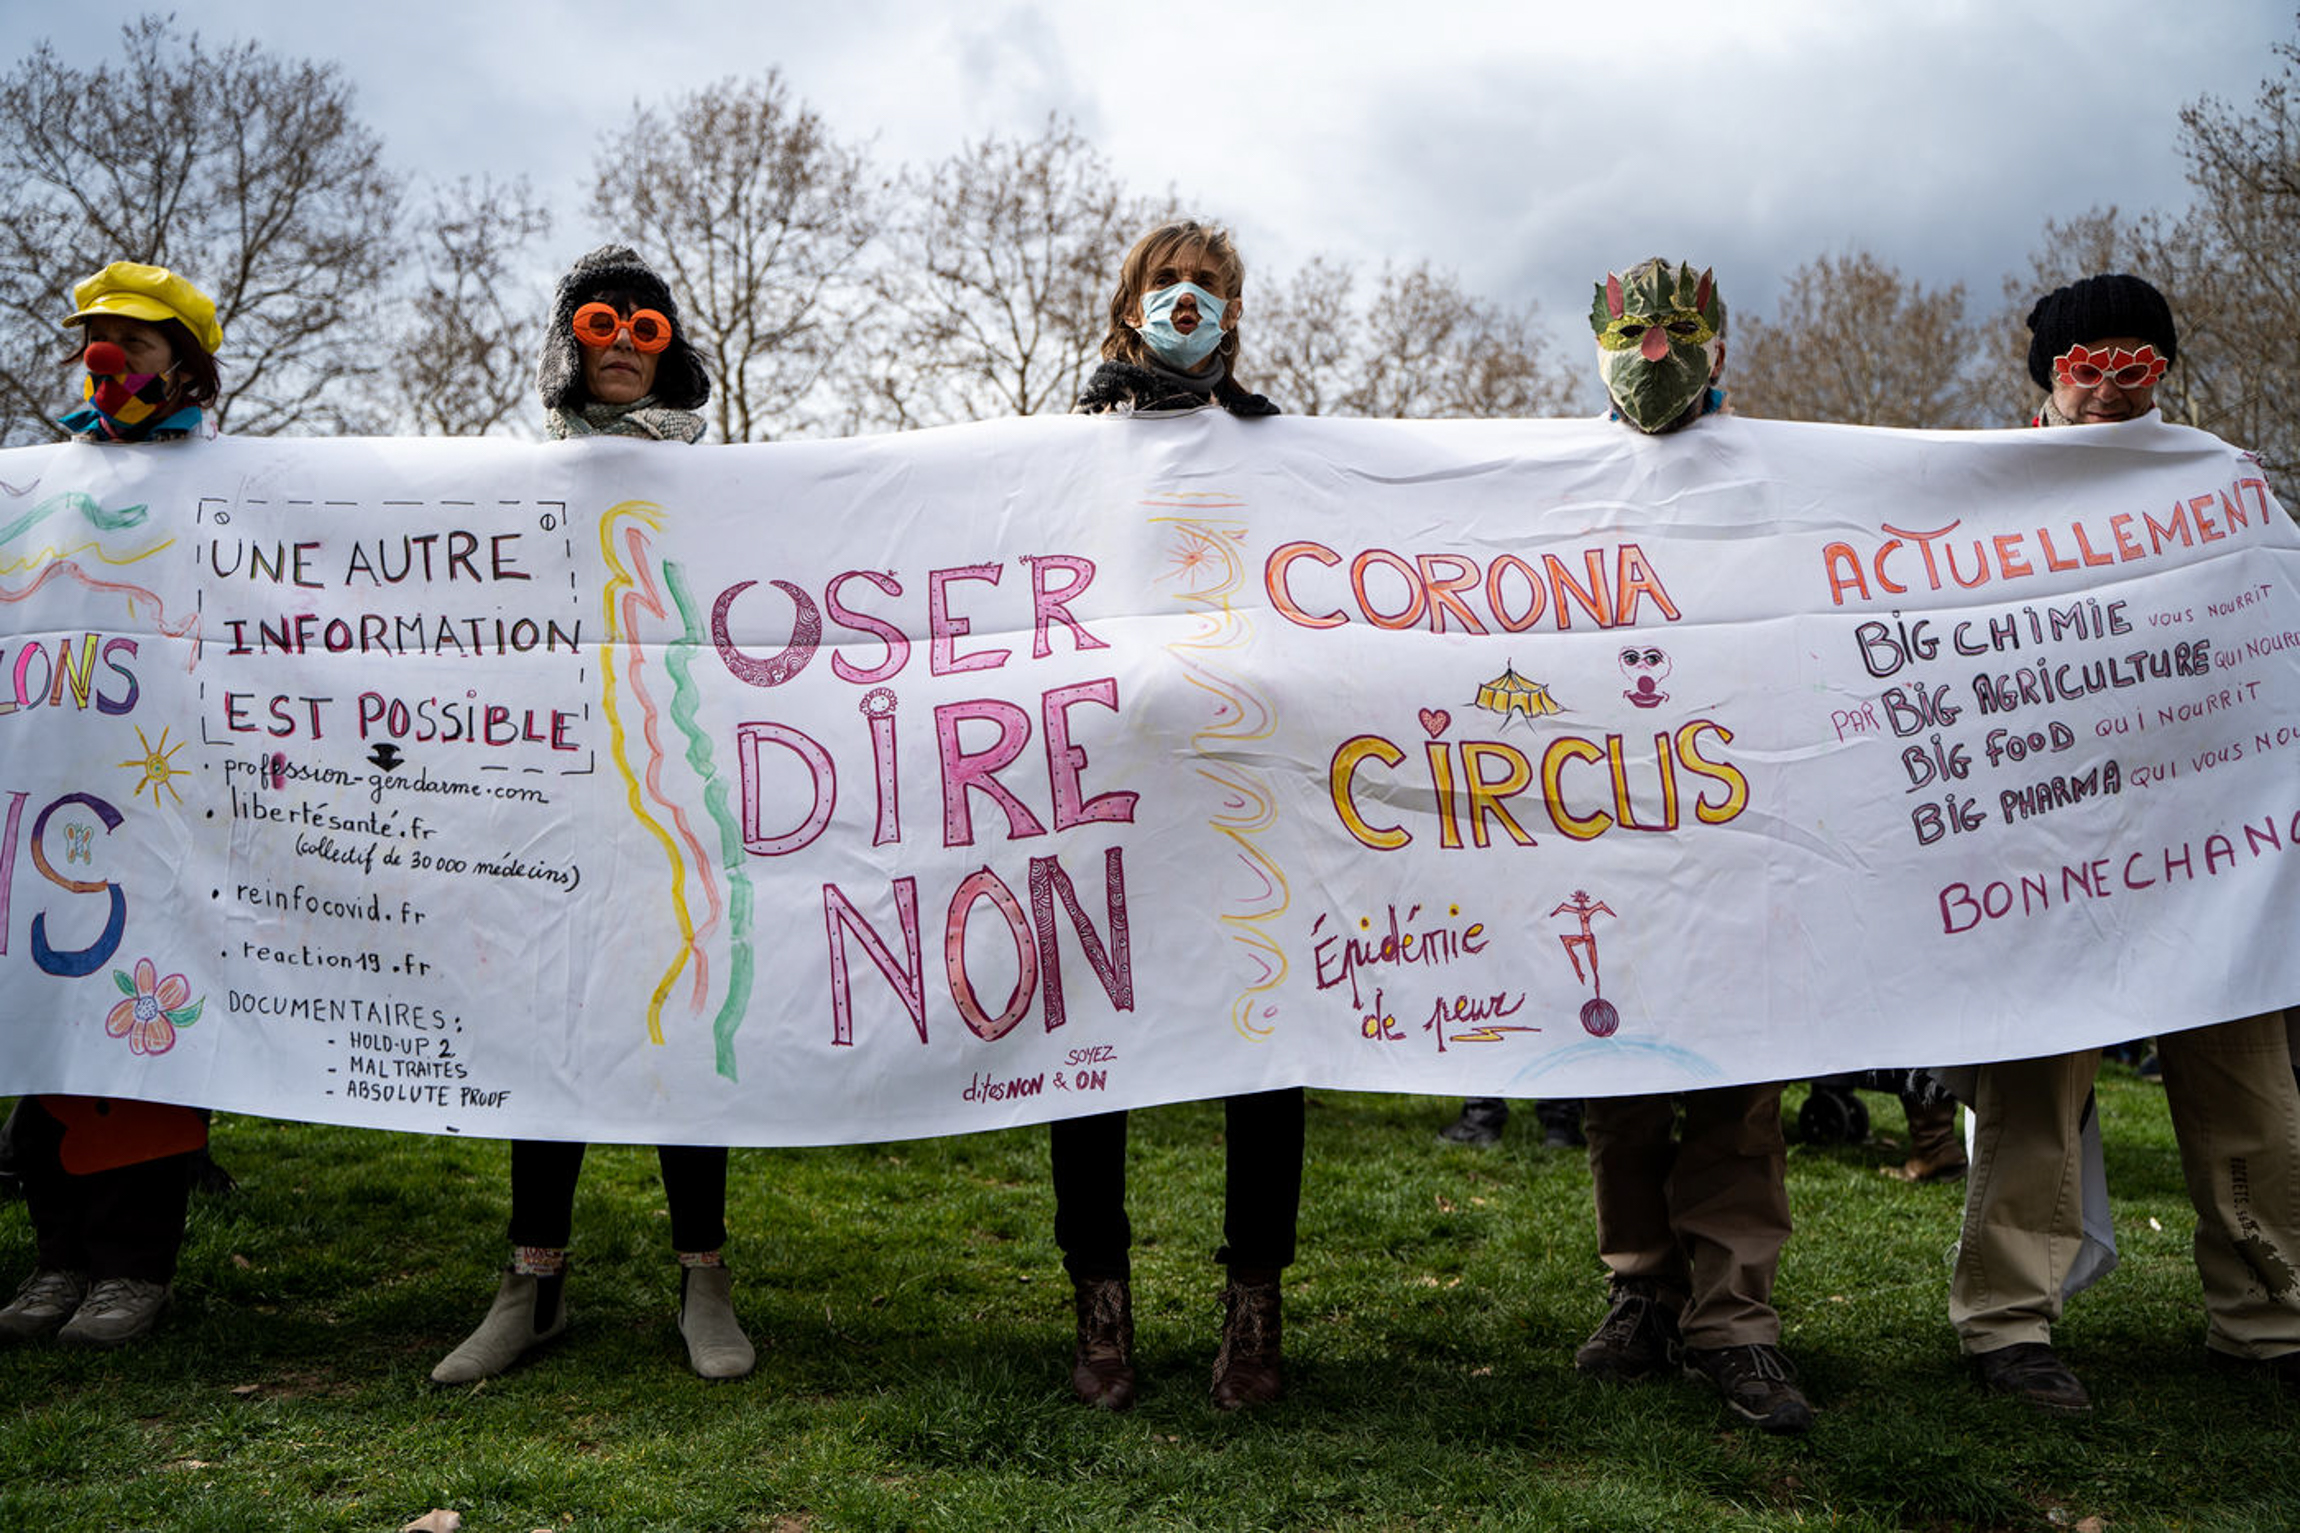 """""""Libert Air"""" rally against masks and other pandemic-related measures. Lyon, France, 13 March 2021 (Nicolas Liponne)"""